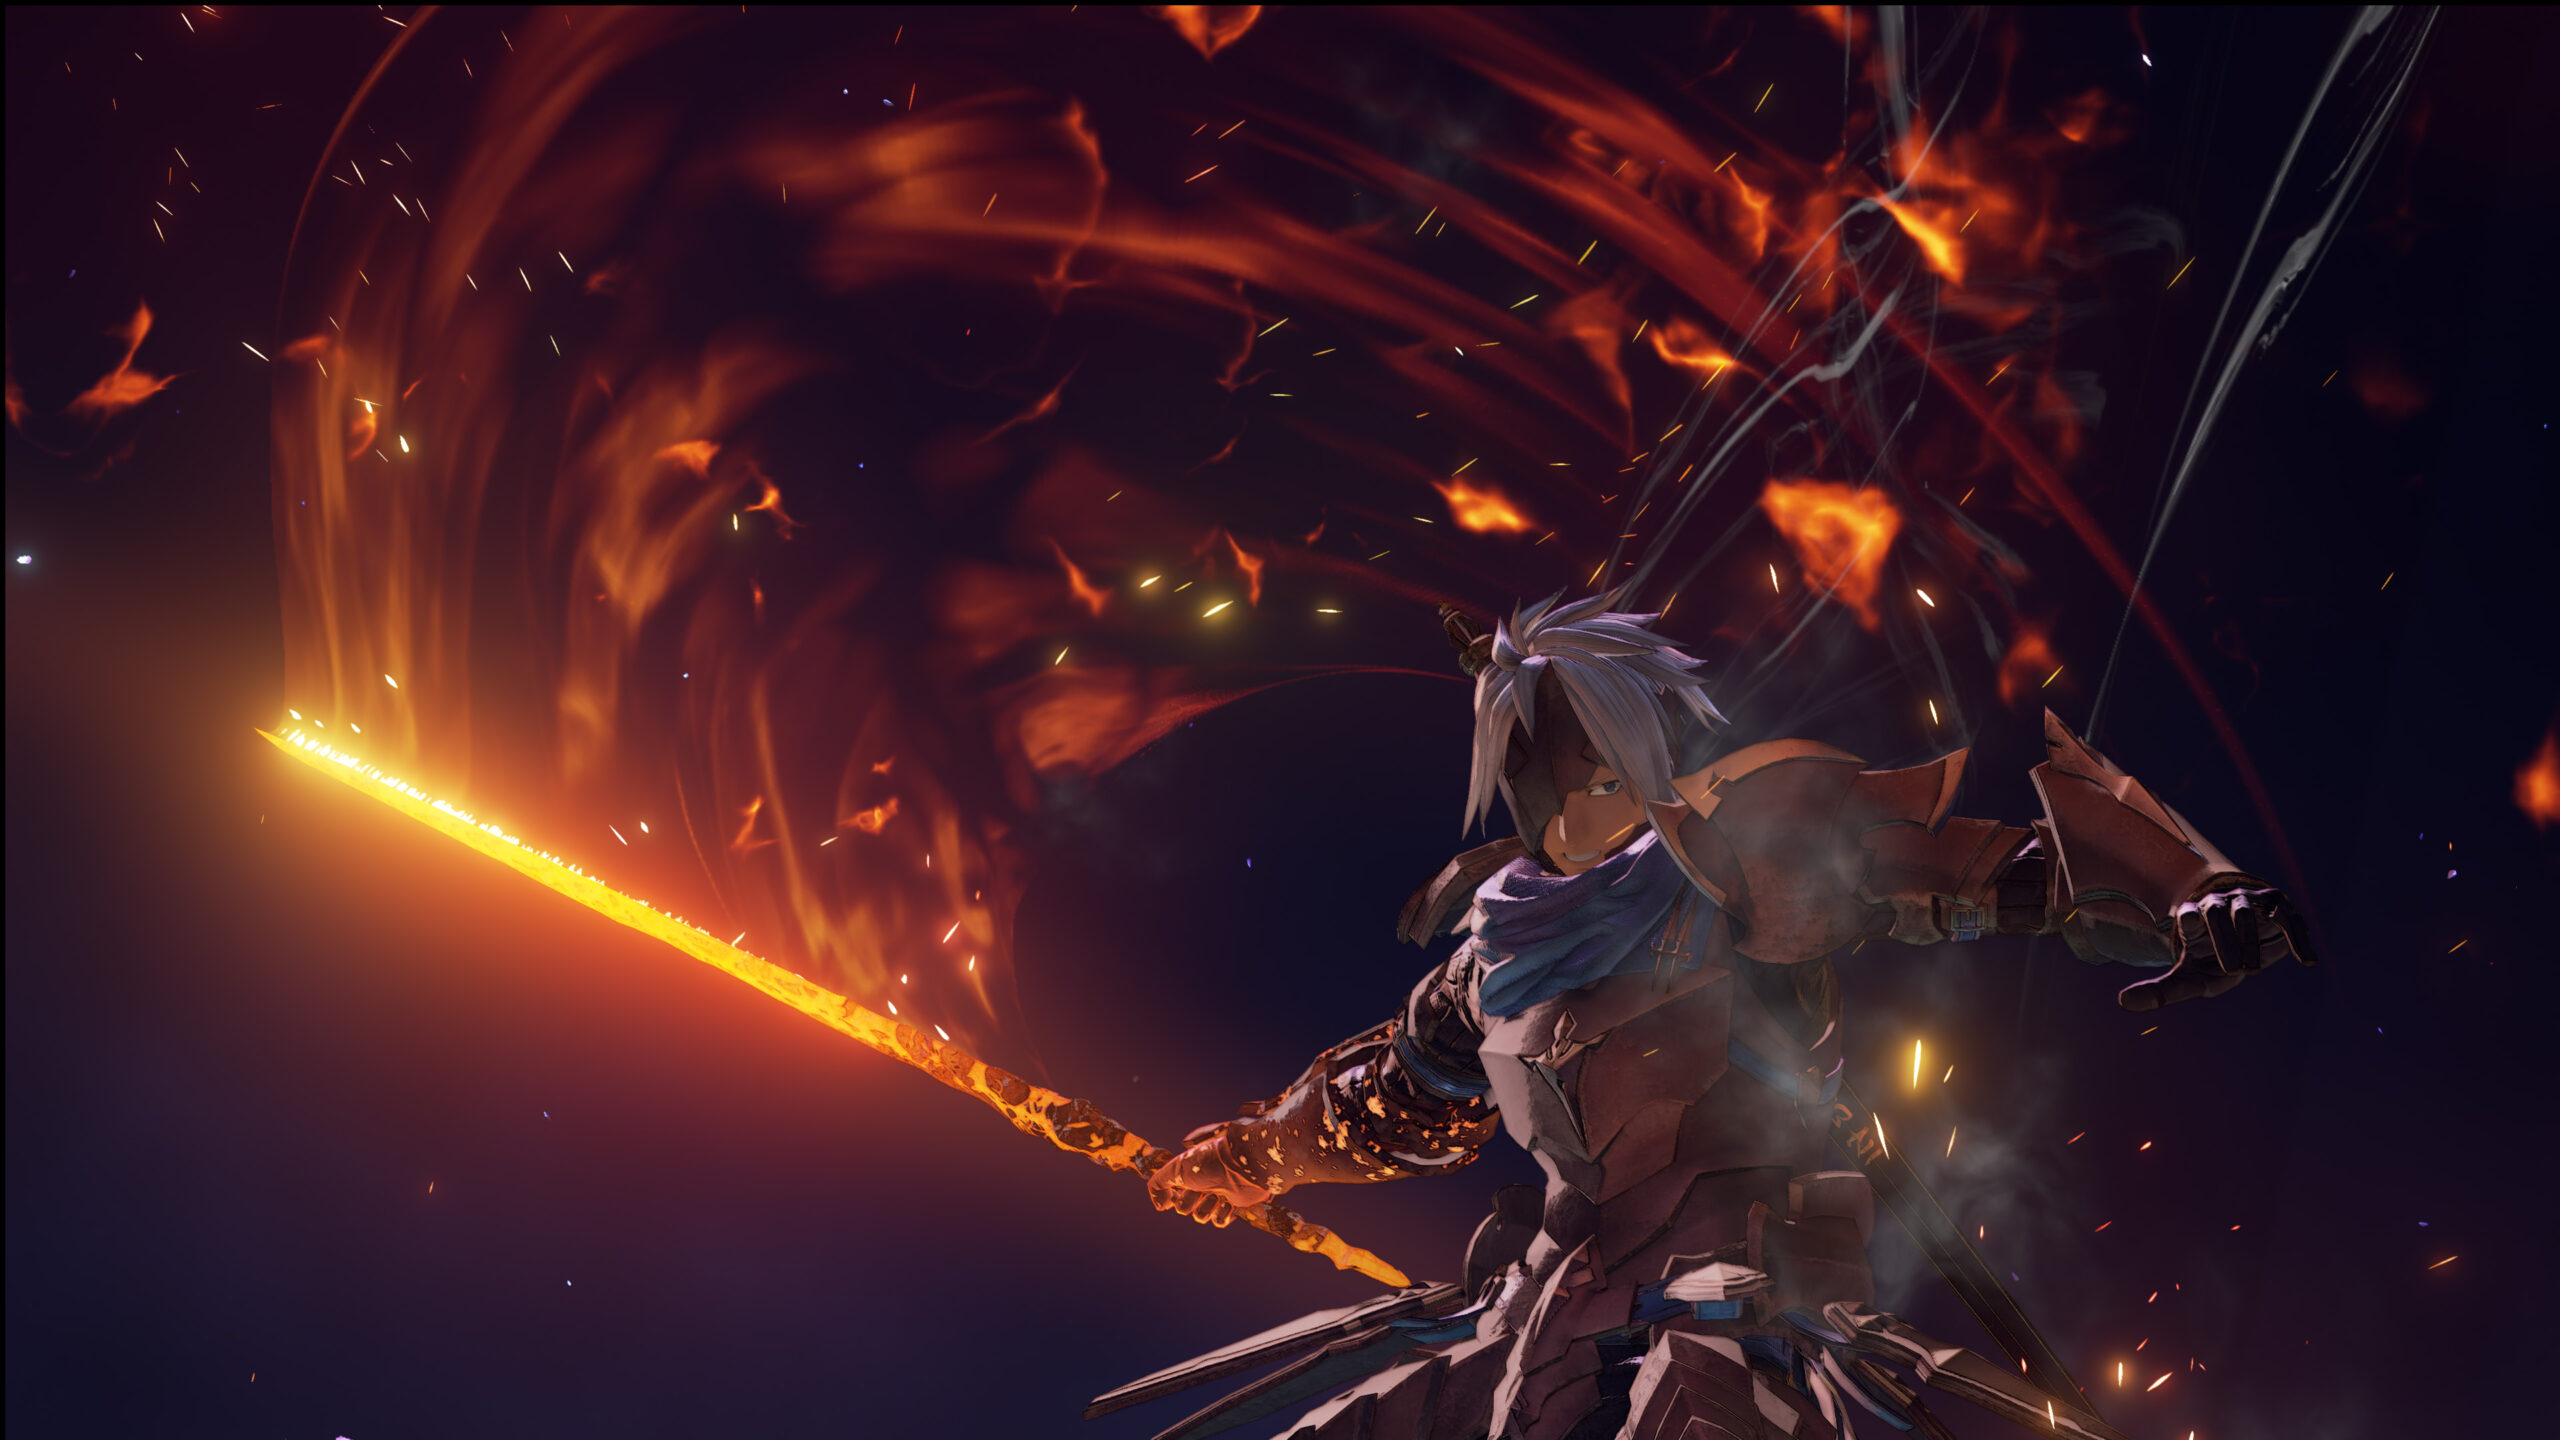 Tales of Arise New Trailer, Screenshots, Showcase Mystic Artes and More